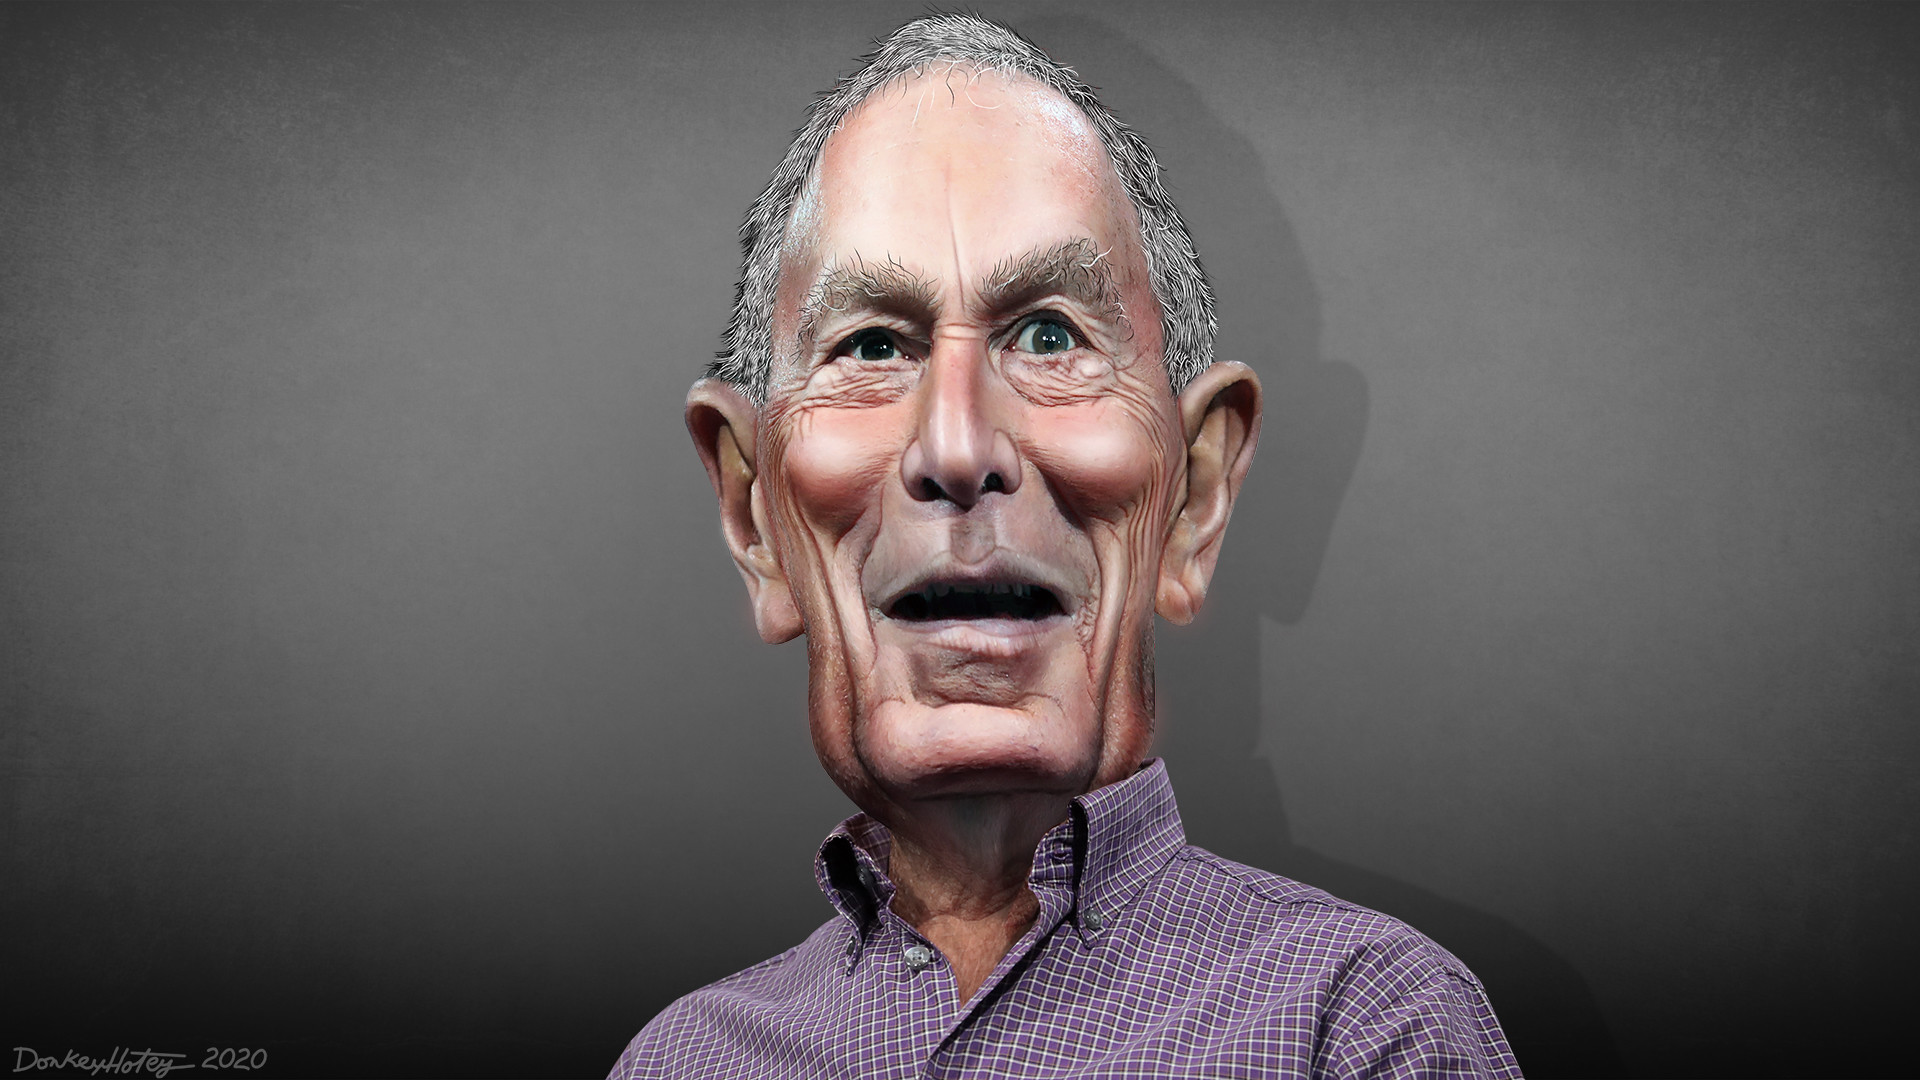 Citizens United calls on FEC to close 'loophole' after Bloomberg sends $18M to DNC